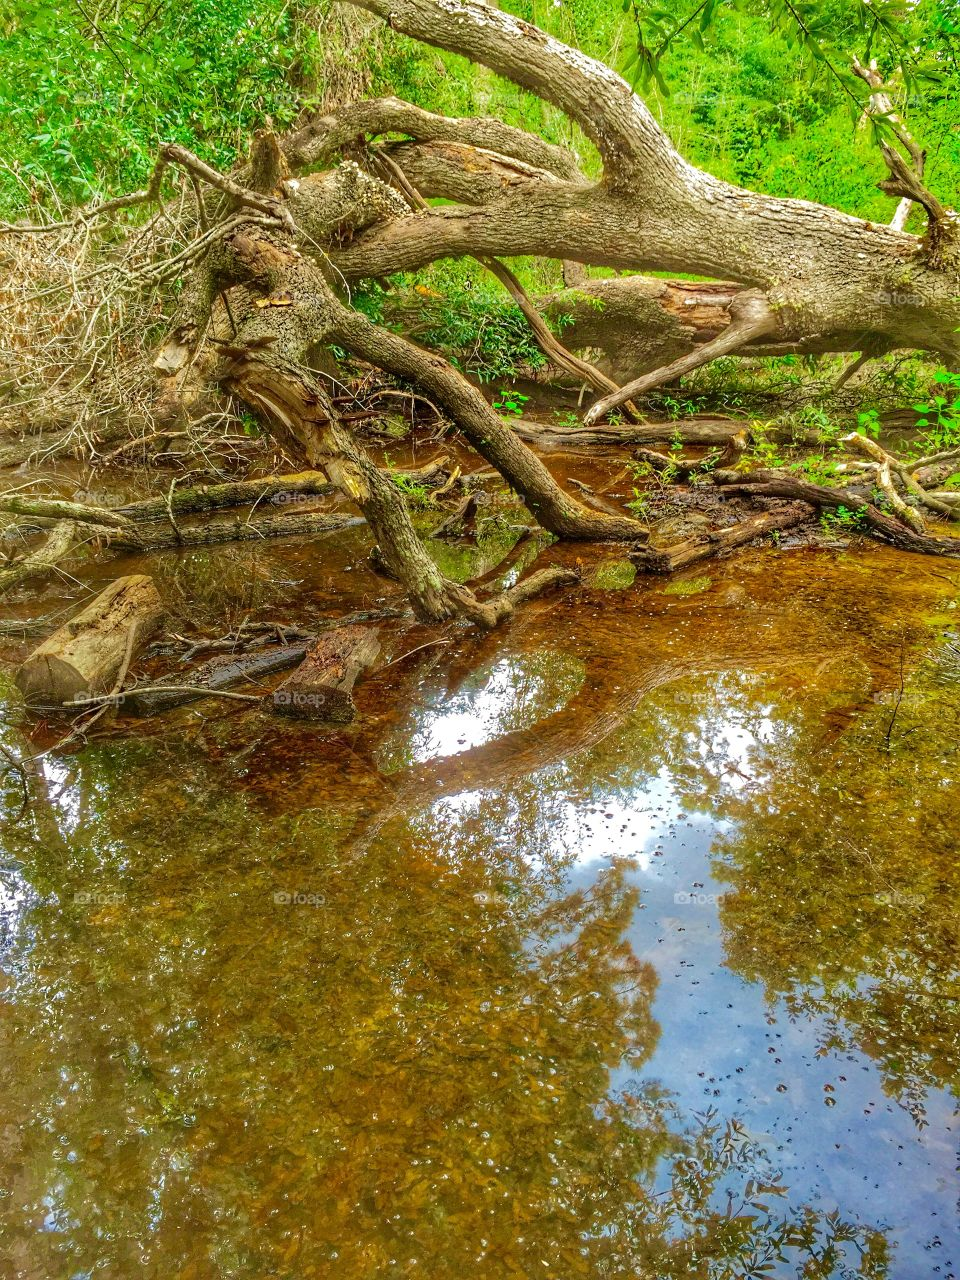 A tree that had fallen in the wood that has water under it that leaves a reflection